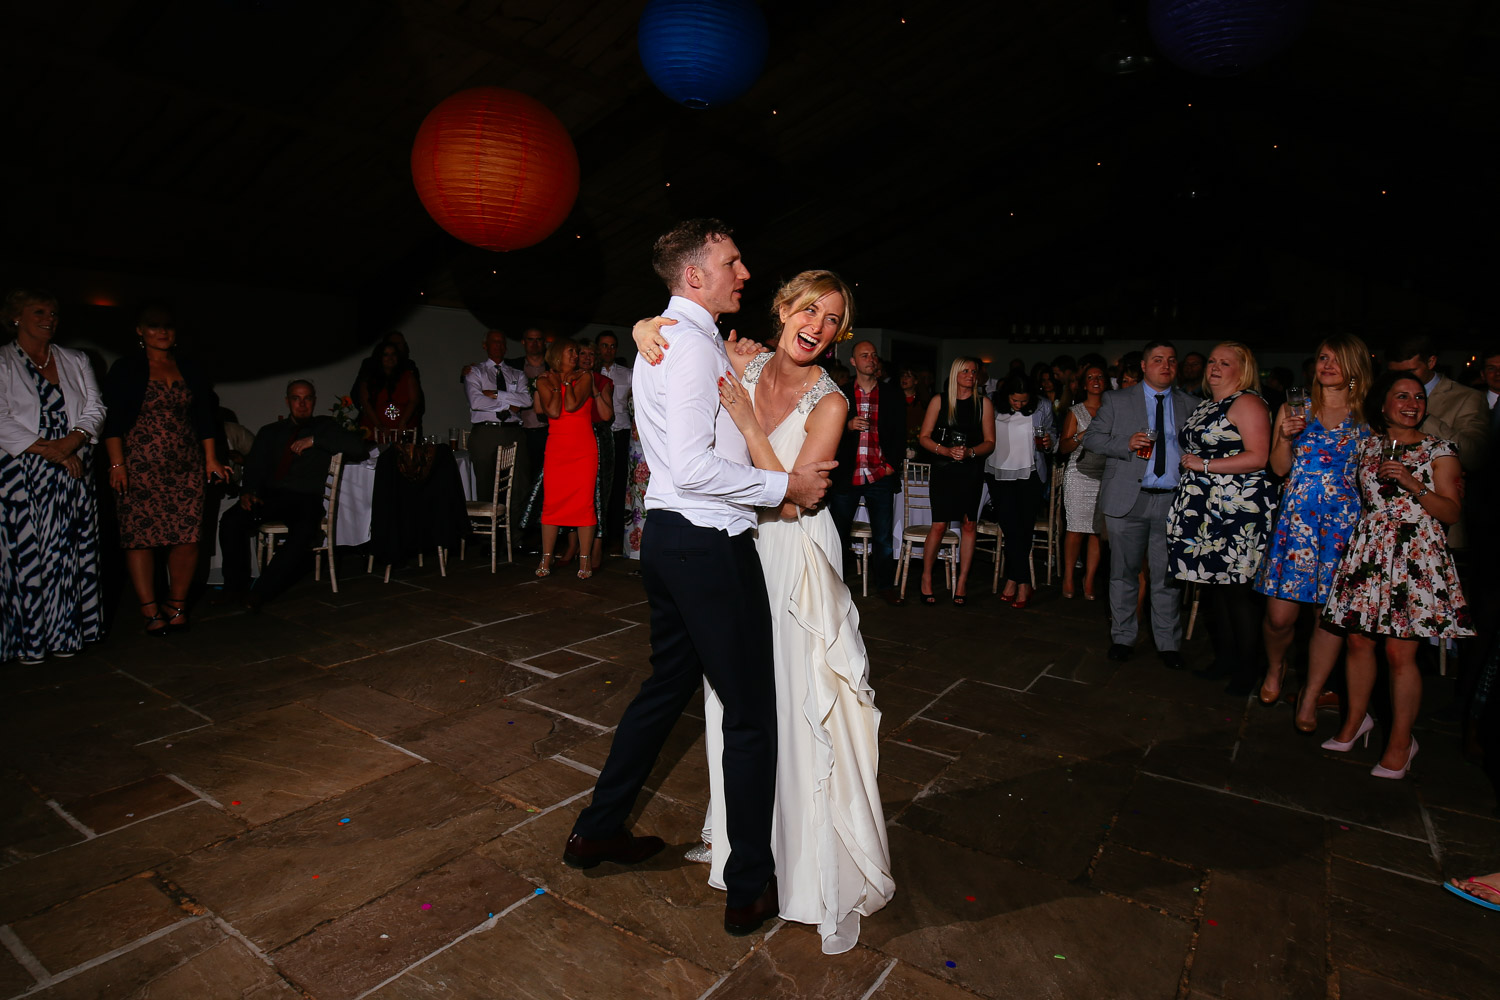 Gemma-and-Matt-Wedding-Highlights-96.jpg